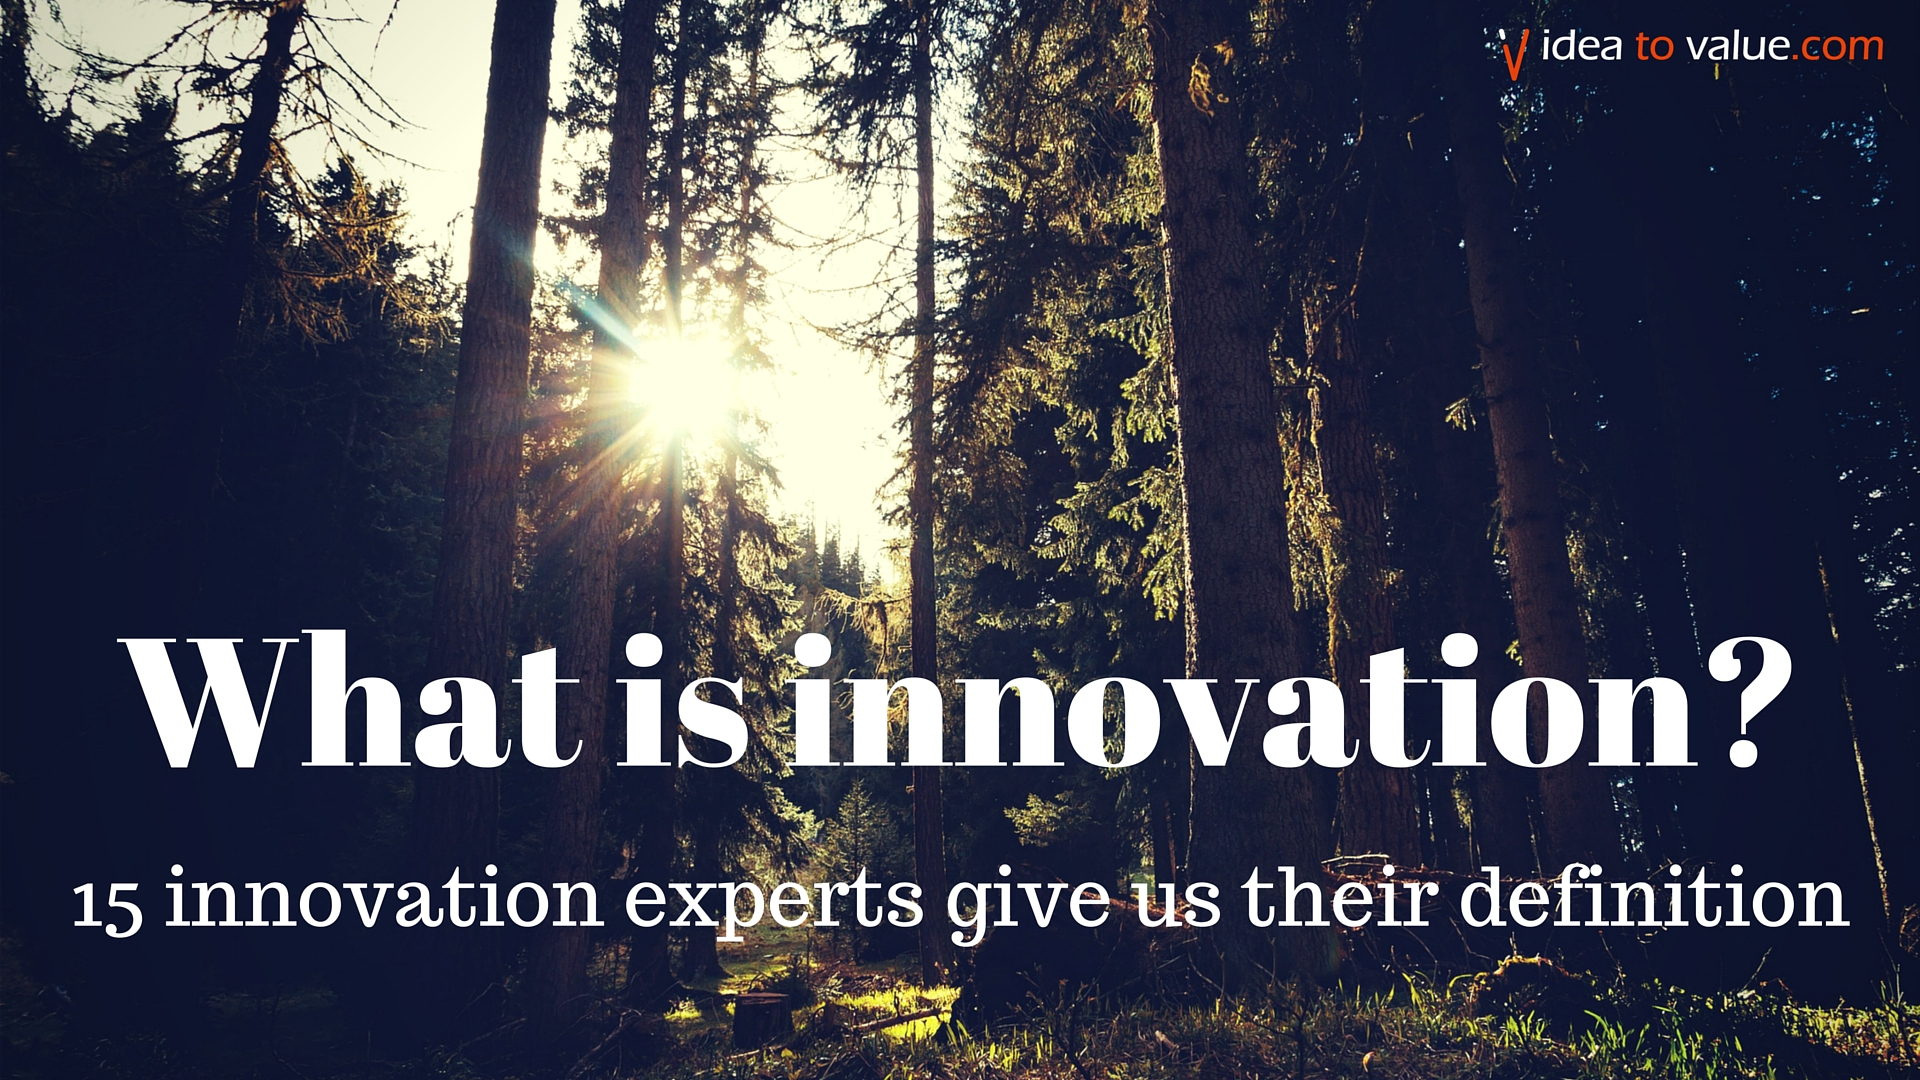 15 Experts Share Their Innovation Definition